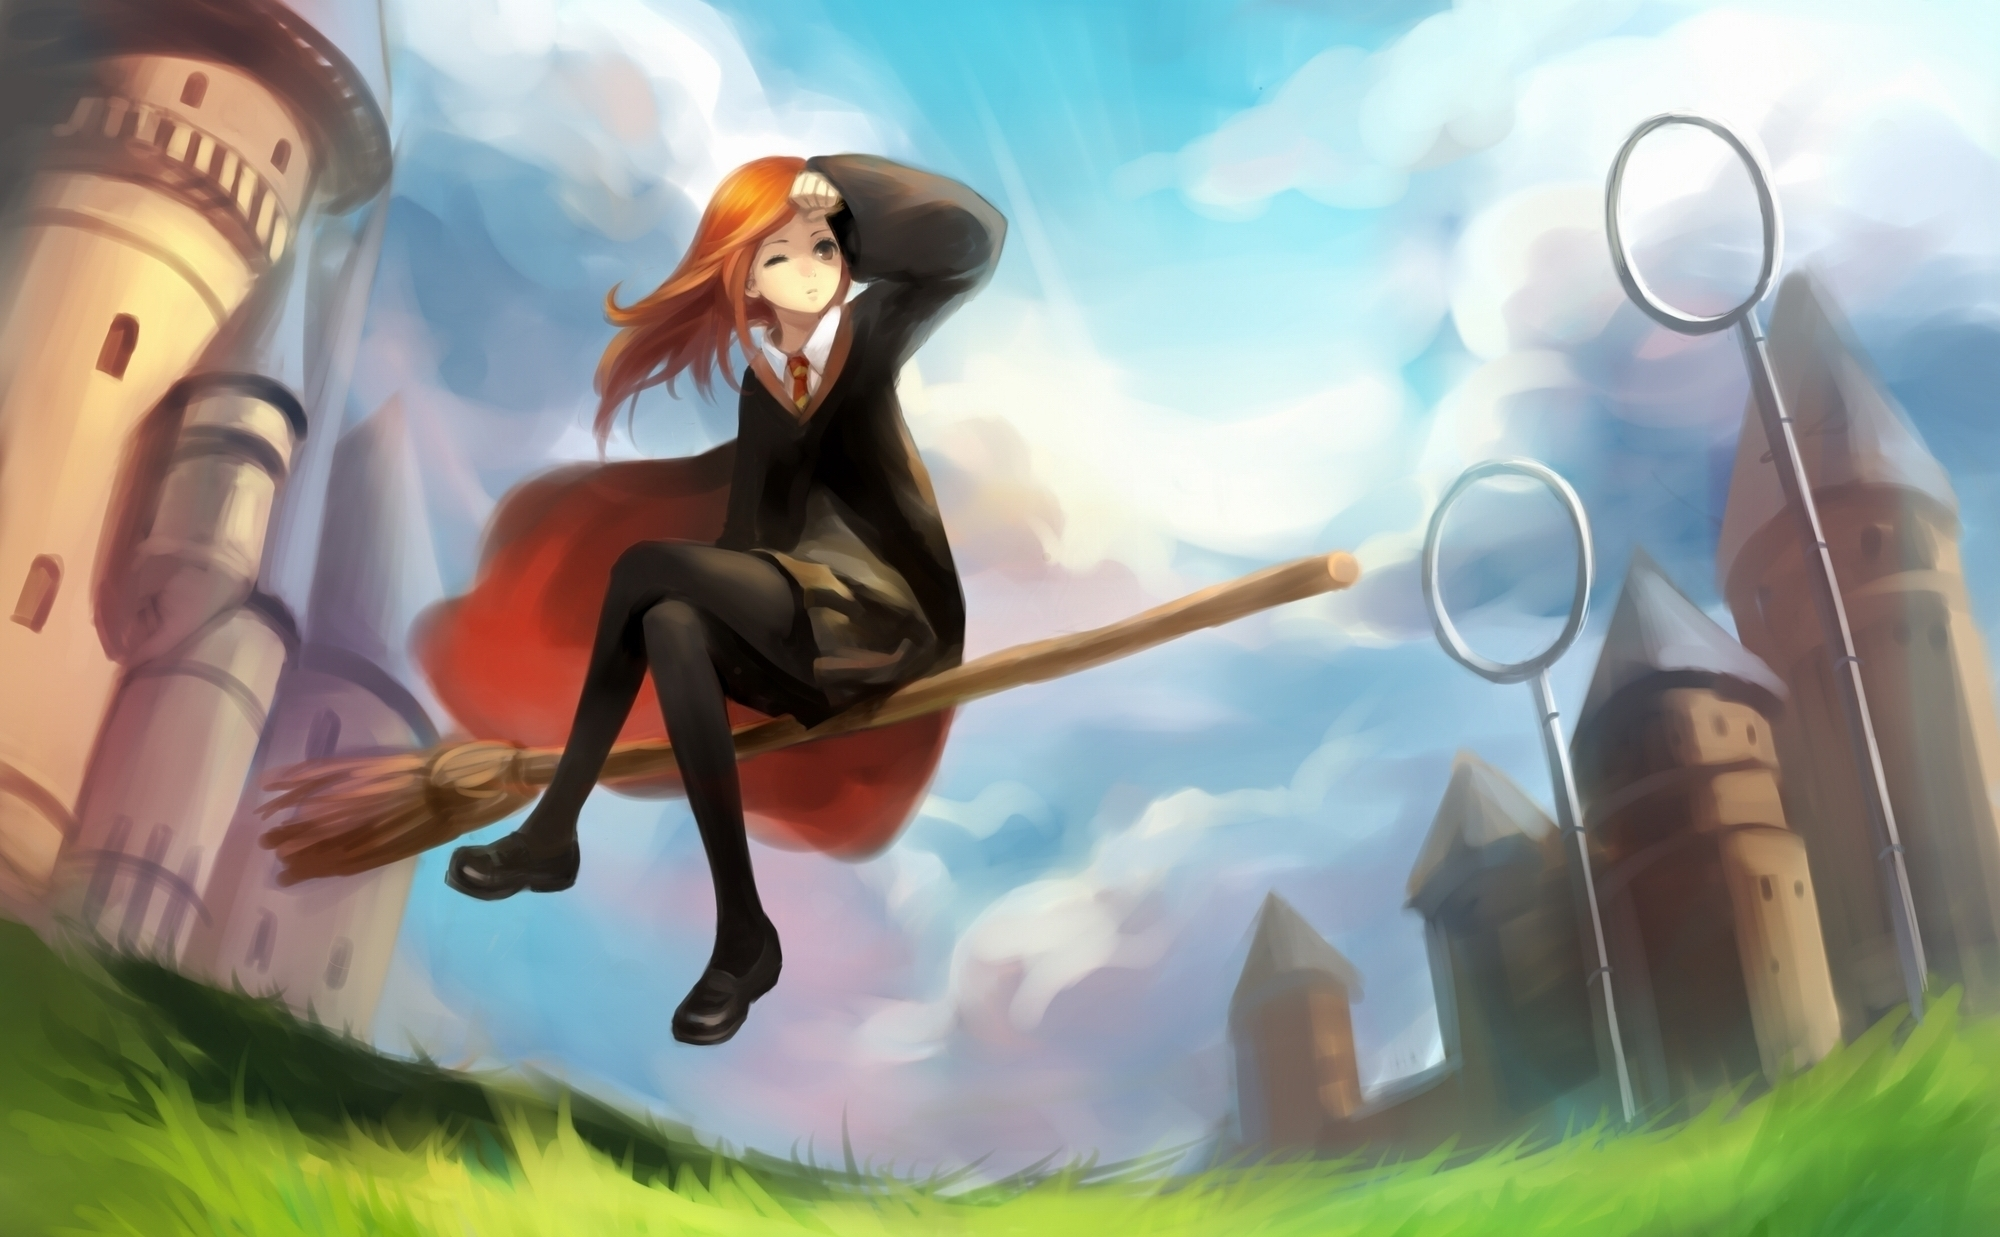 Good Wallpaper Harry Potter Animated - 175666  Trends_3135.jpg